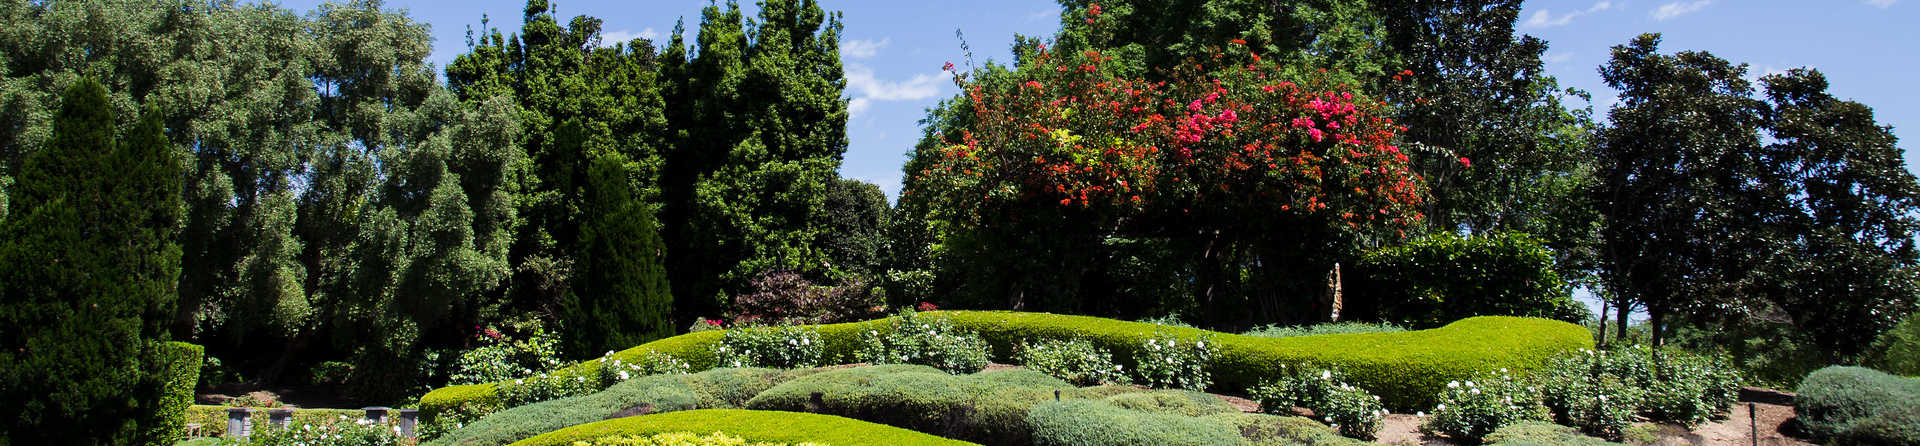 How Much is the Hunter Valley Gardens Entrance?